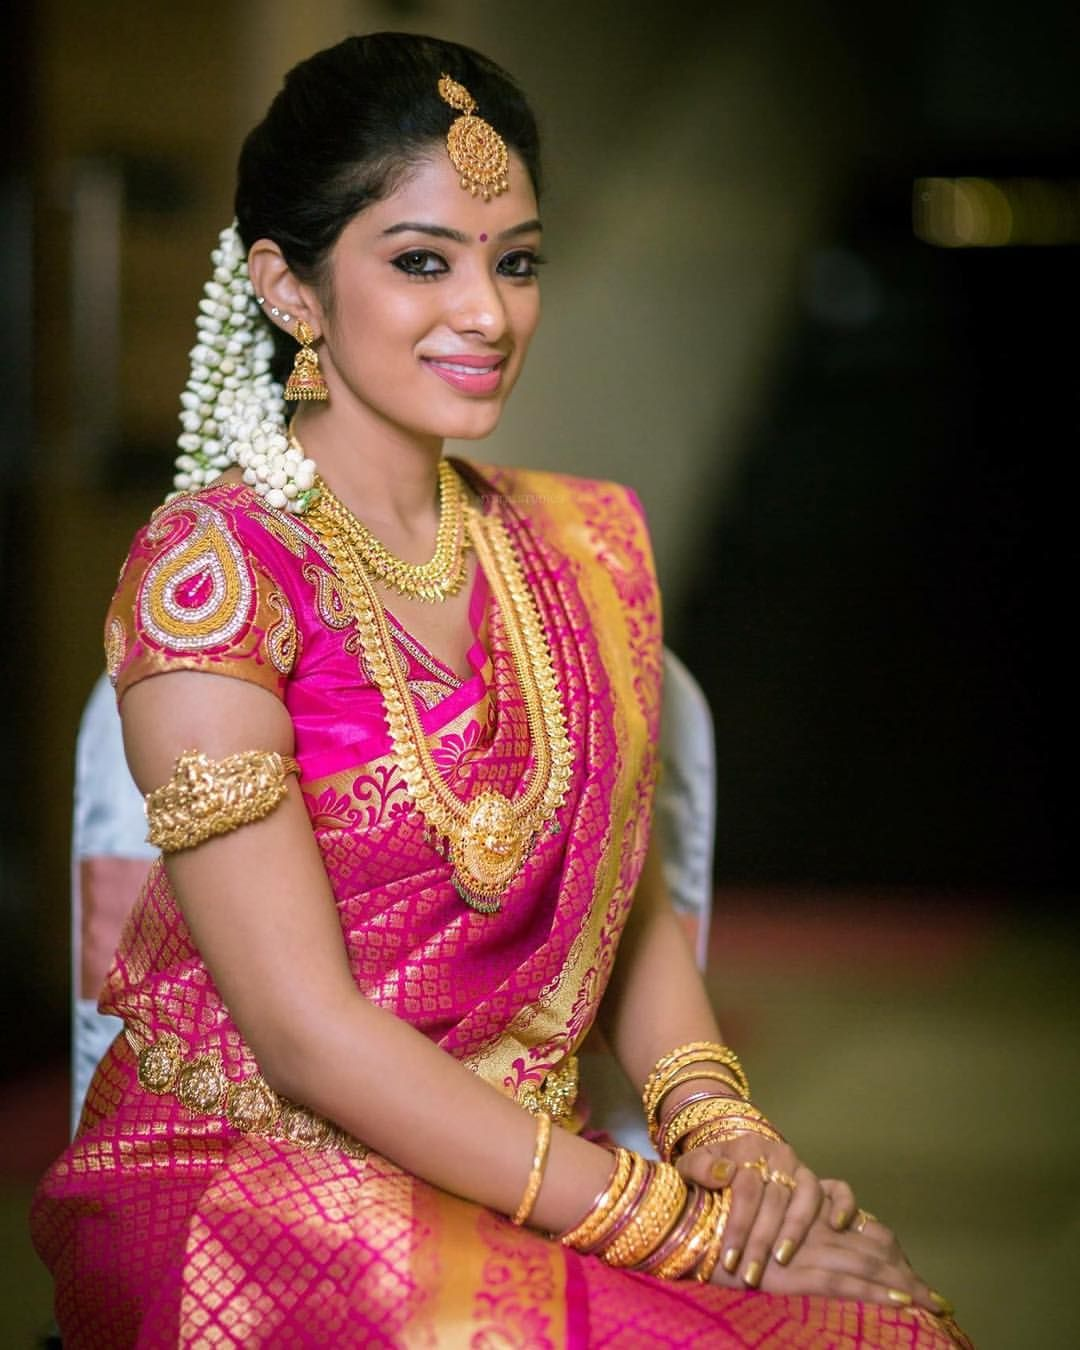 Wedding Hairstyle Kerala: South Indian Bride. Gold Indian Bridal Jewelry.Temple